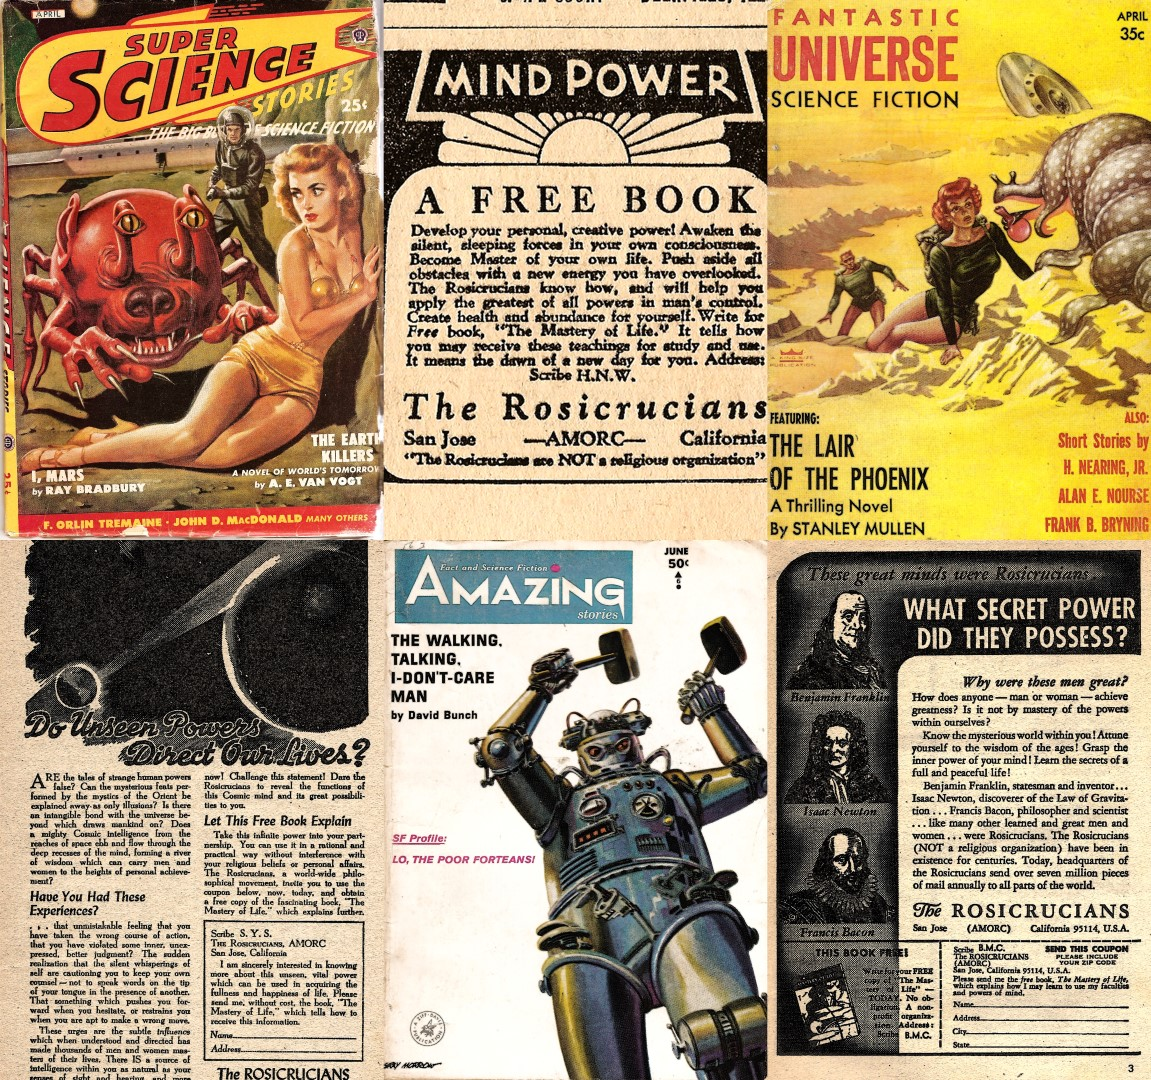 AMORC A.M.O.R.C. American English Pulp Magazine Science Fiction Fantastic Universe Amazin Stories The Rosicrucians Spencer Lewis Antiquus Mysticus Ordo Rosae Crucis or Ancient Mystical Order of the Rosy Cross